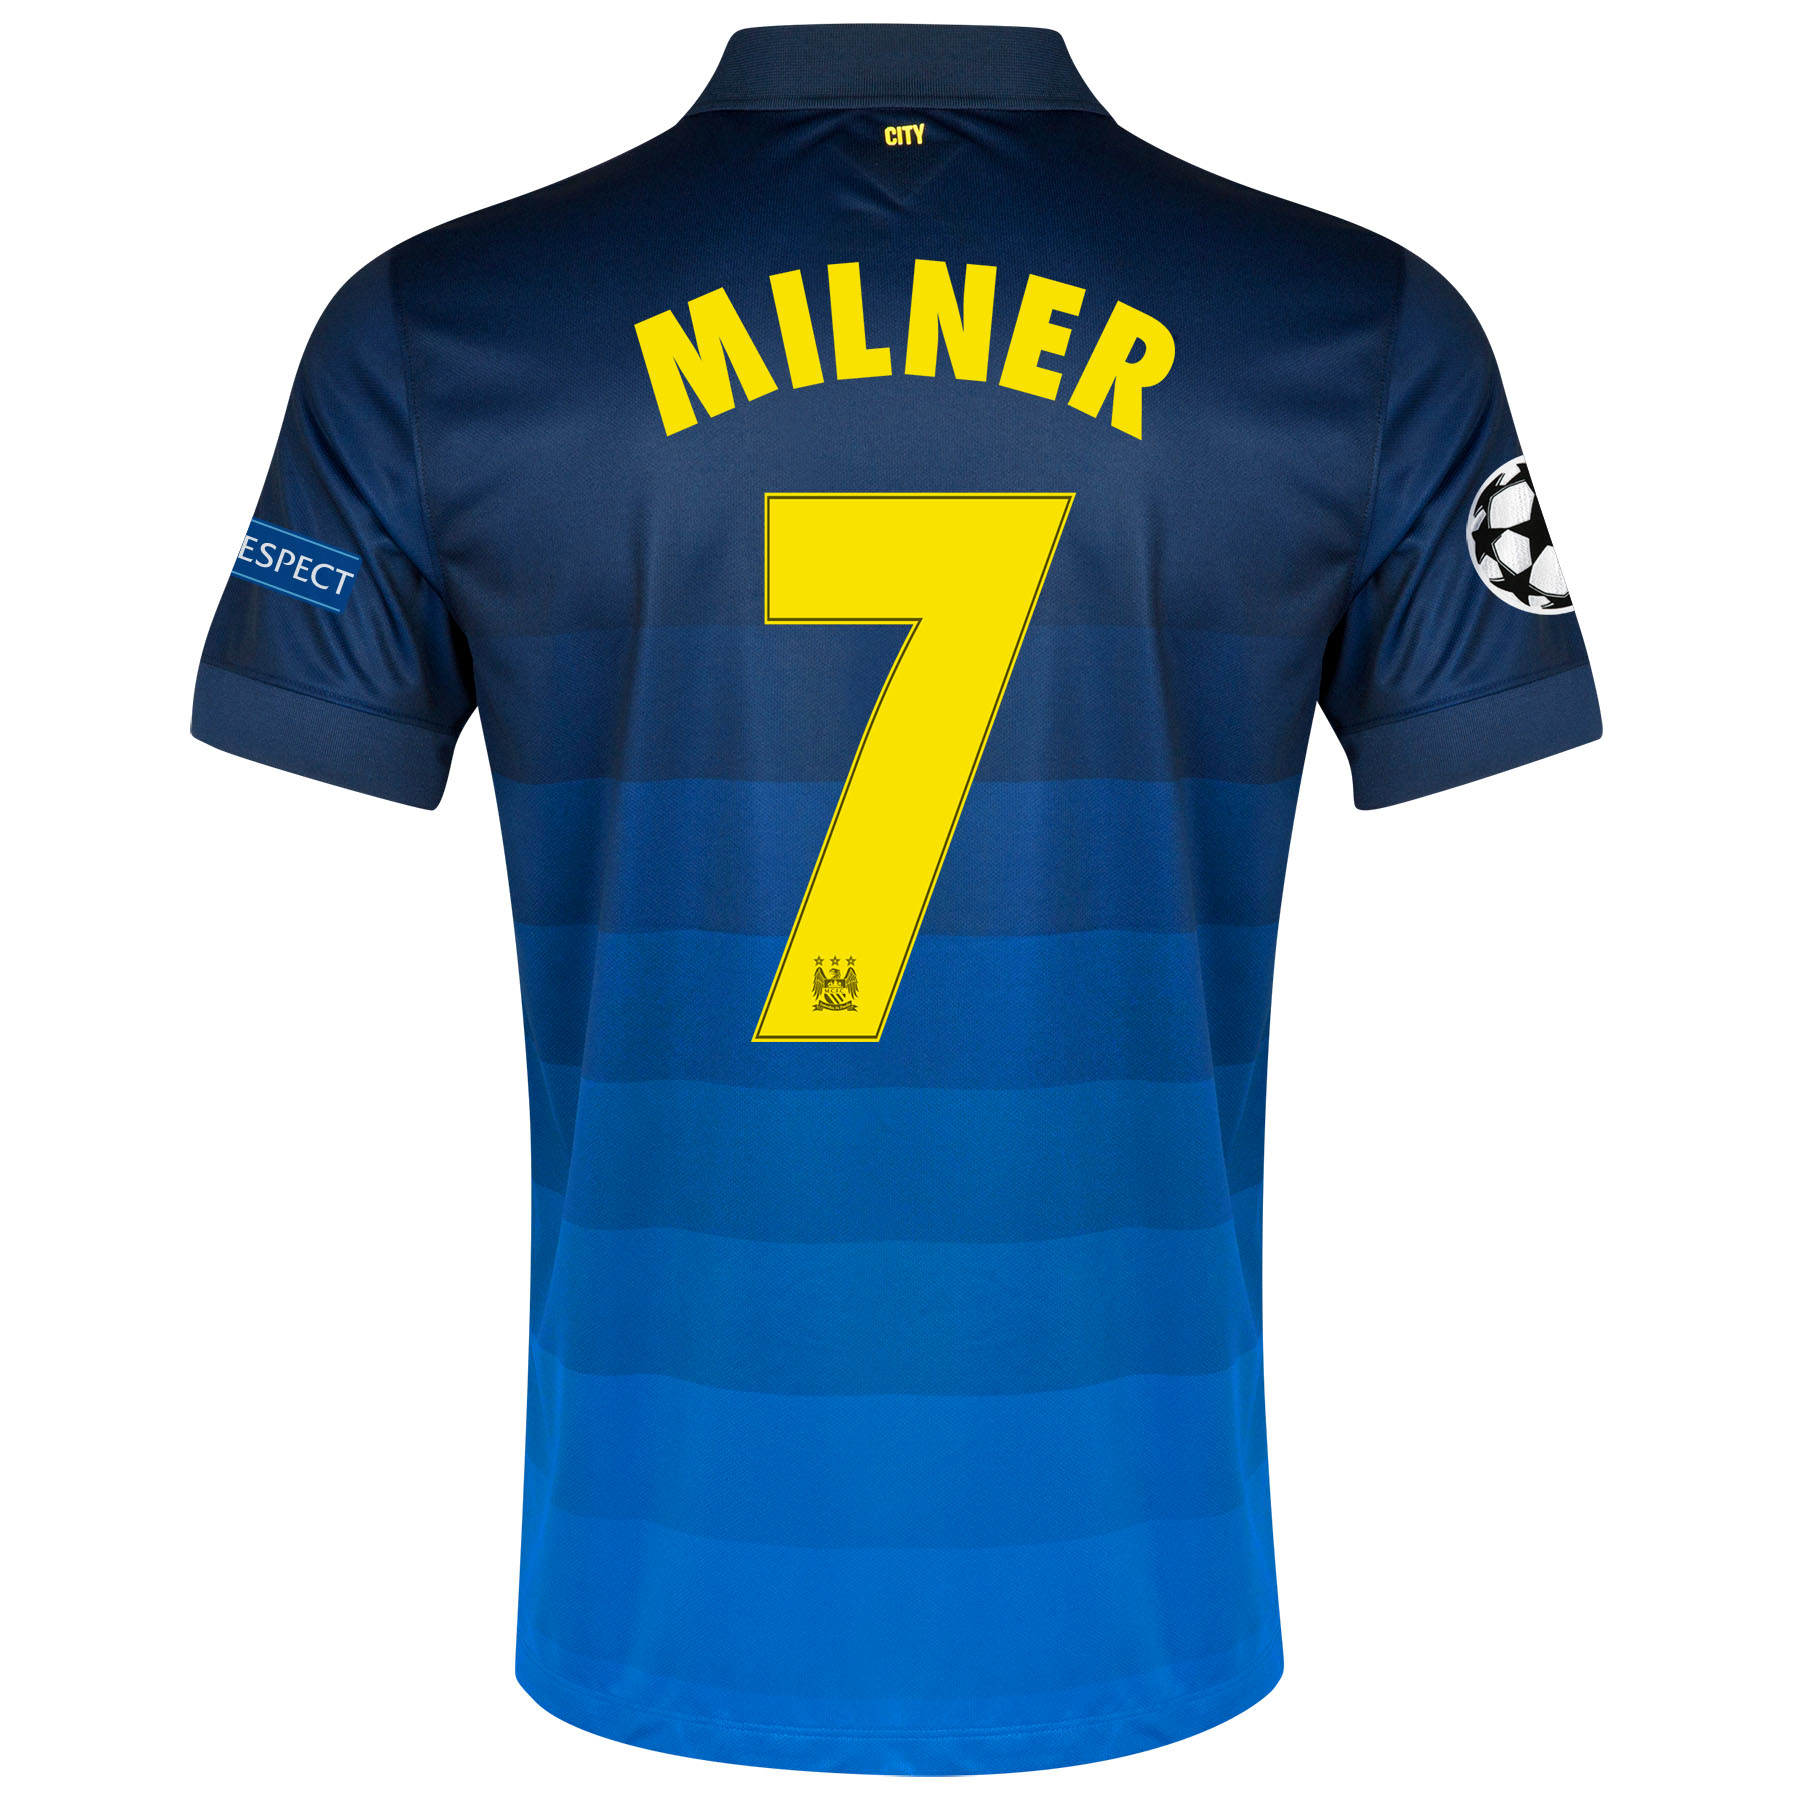 Manchester City UEFA Champions League Away Shirt 2014/15 with Milner 7 printing